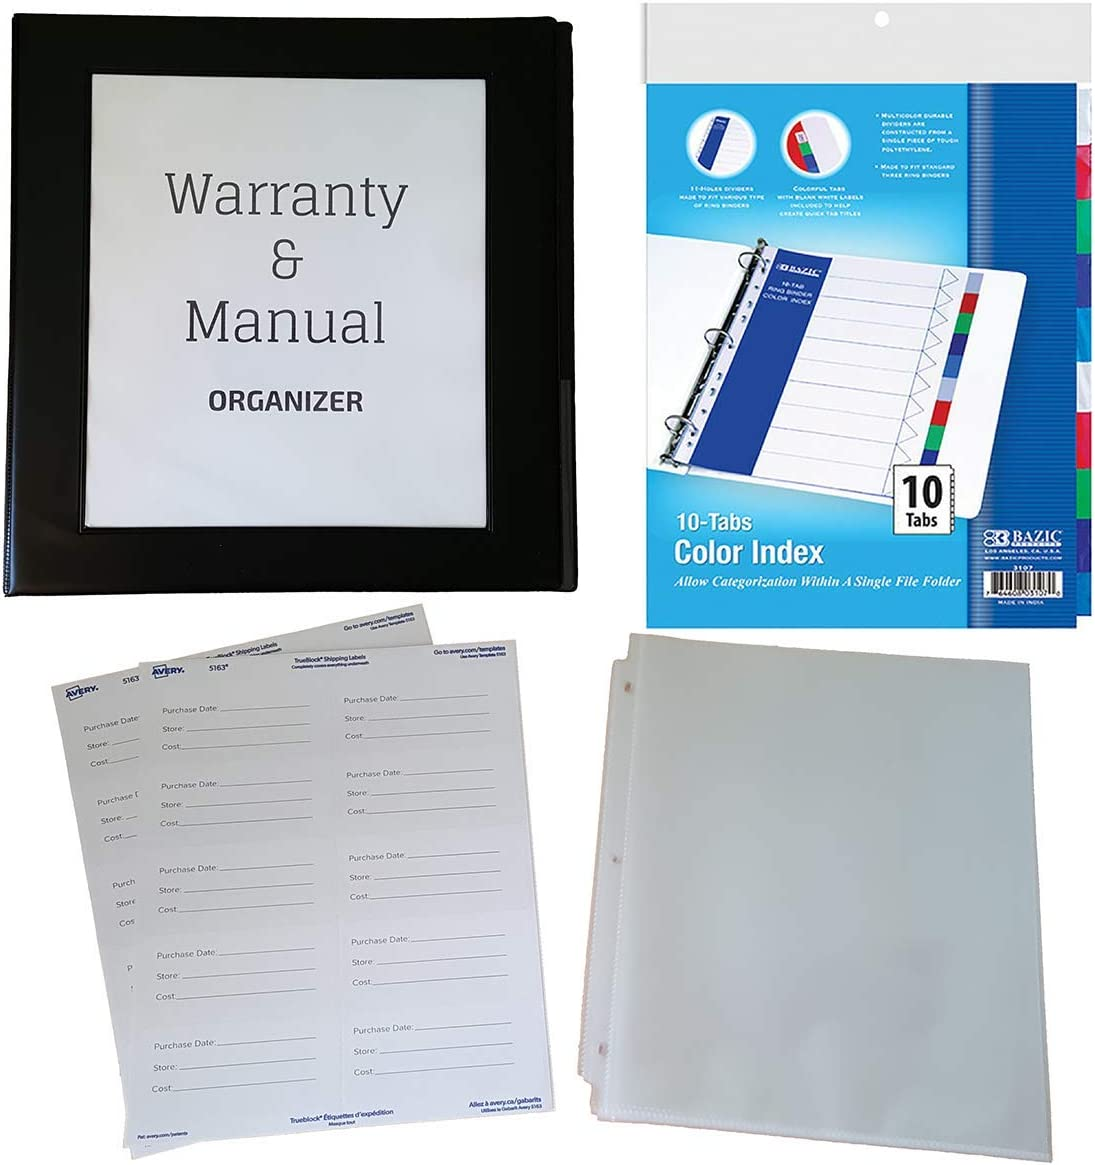 Home Warranty and Manual Organizer Kit with 1.5 Inch 400-Sheet Capacity Binder, Dividers, Sheet Protectors, Product Information Labels, Binder Cover and Sleeve Insert